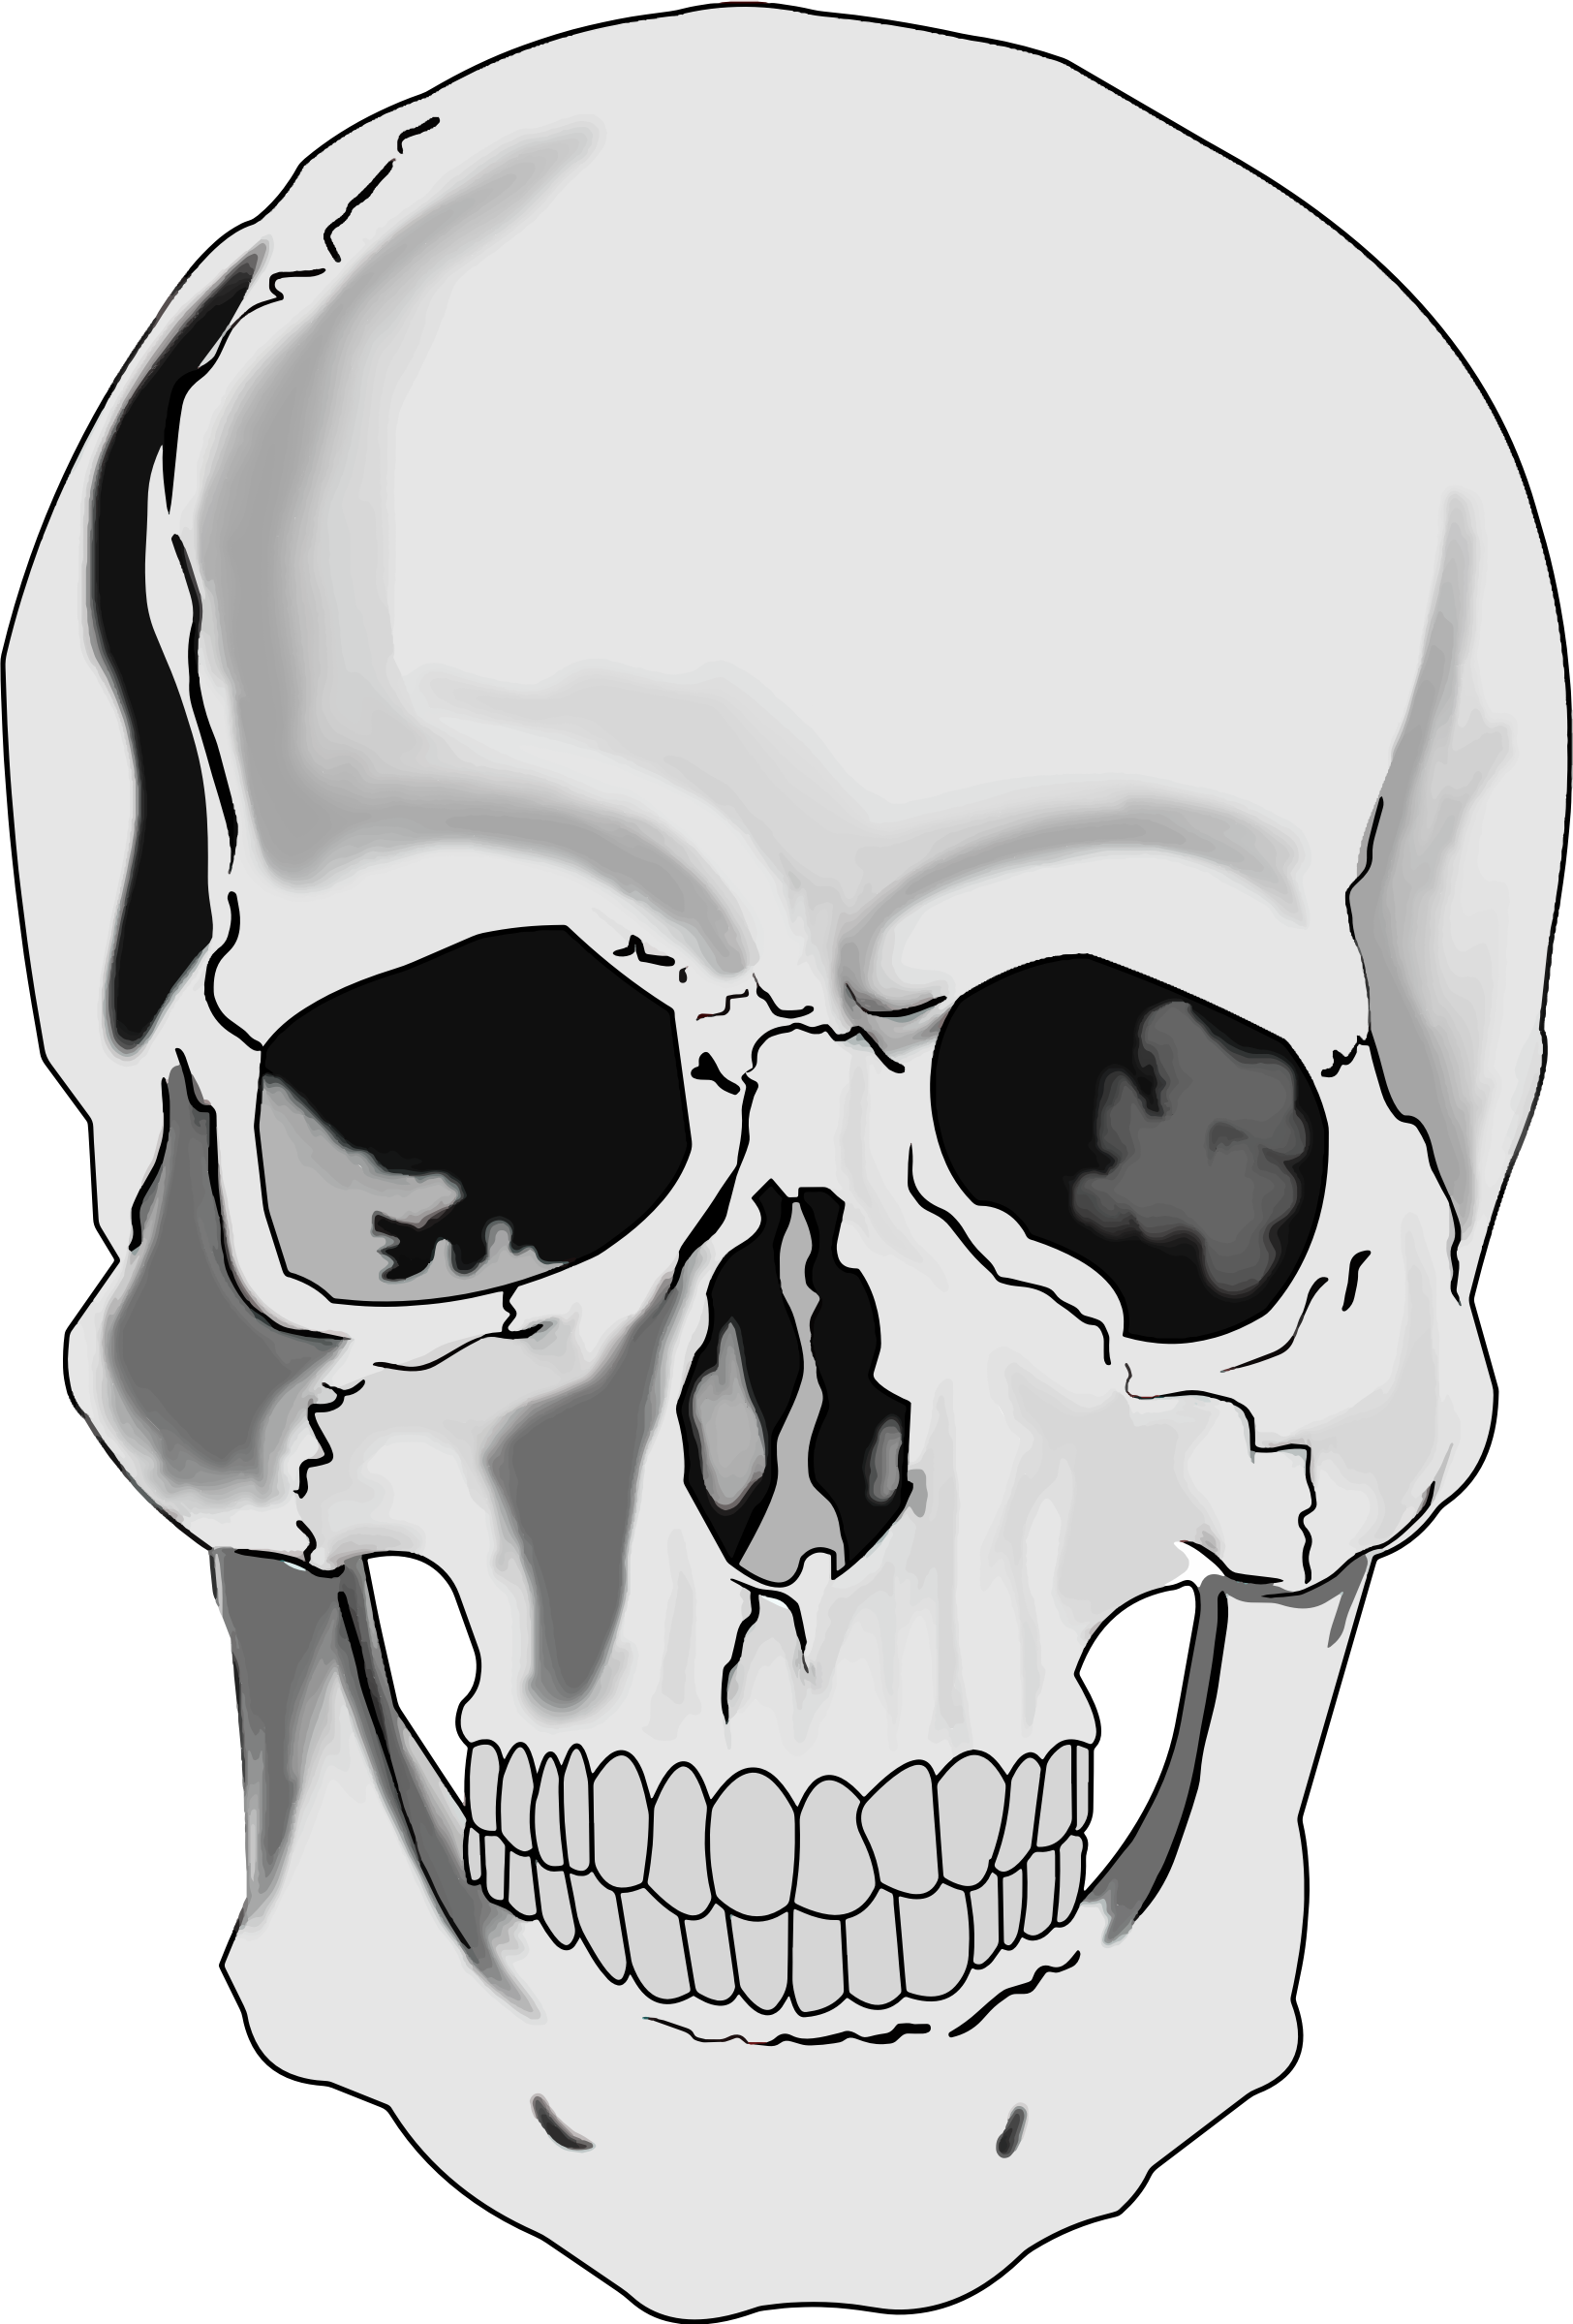 clipart realistic human skull rh openclipart org skull clipart black and white skull clipart pirate